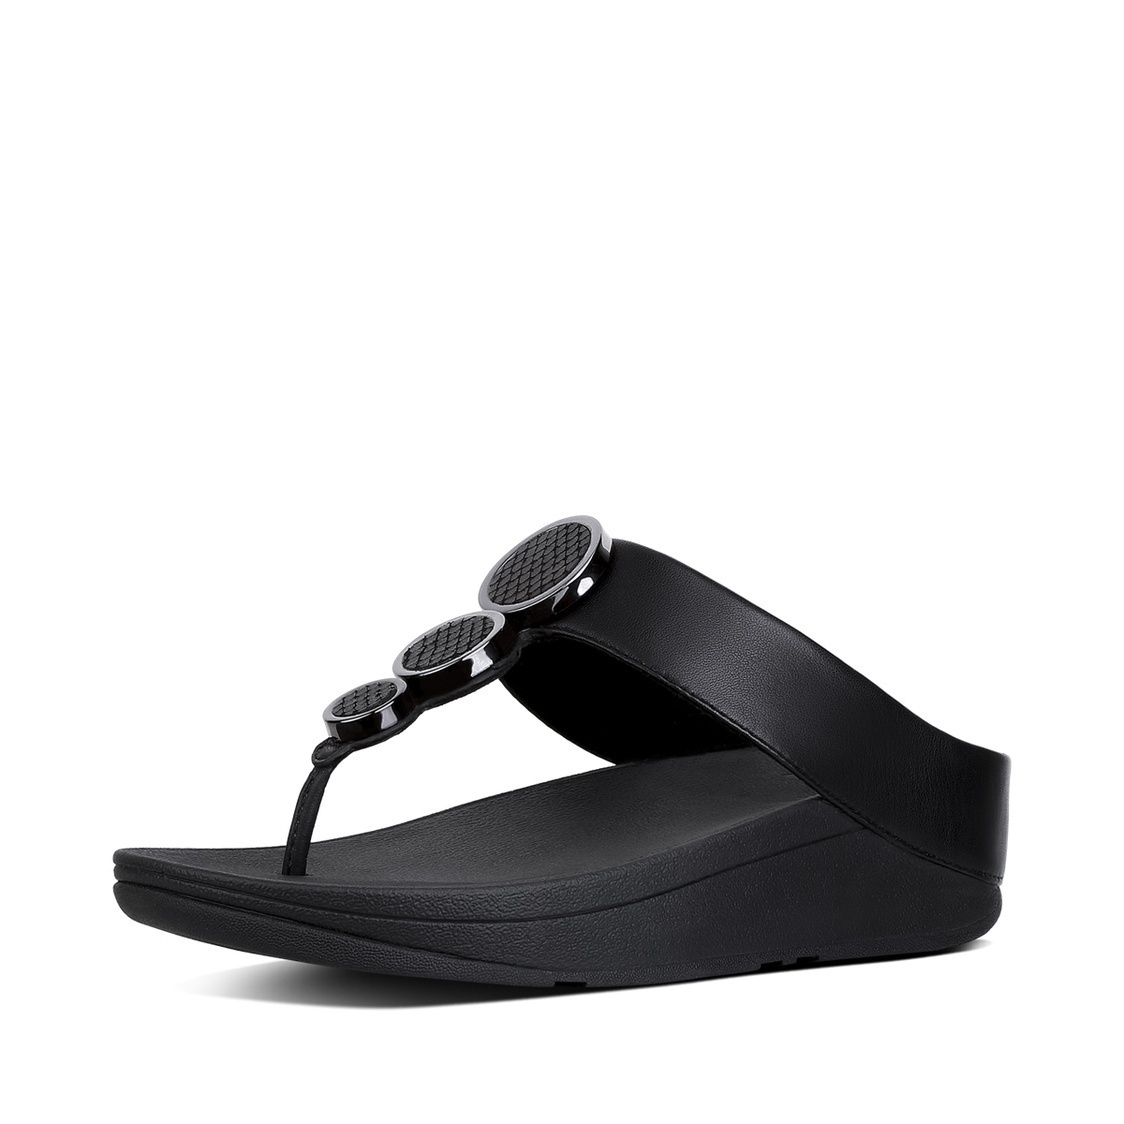 Halo Leather Toe-Thong Sandals